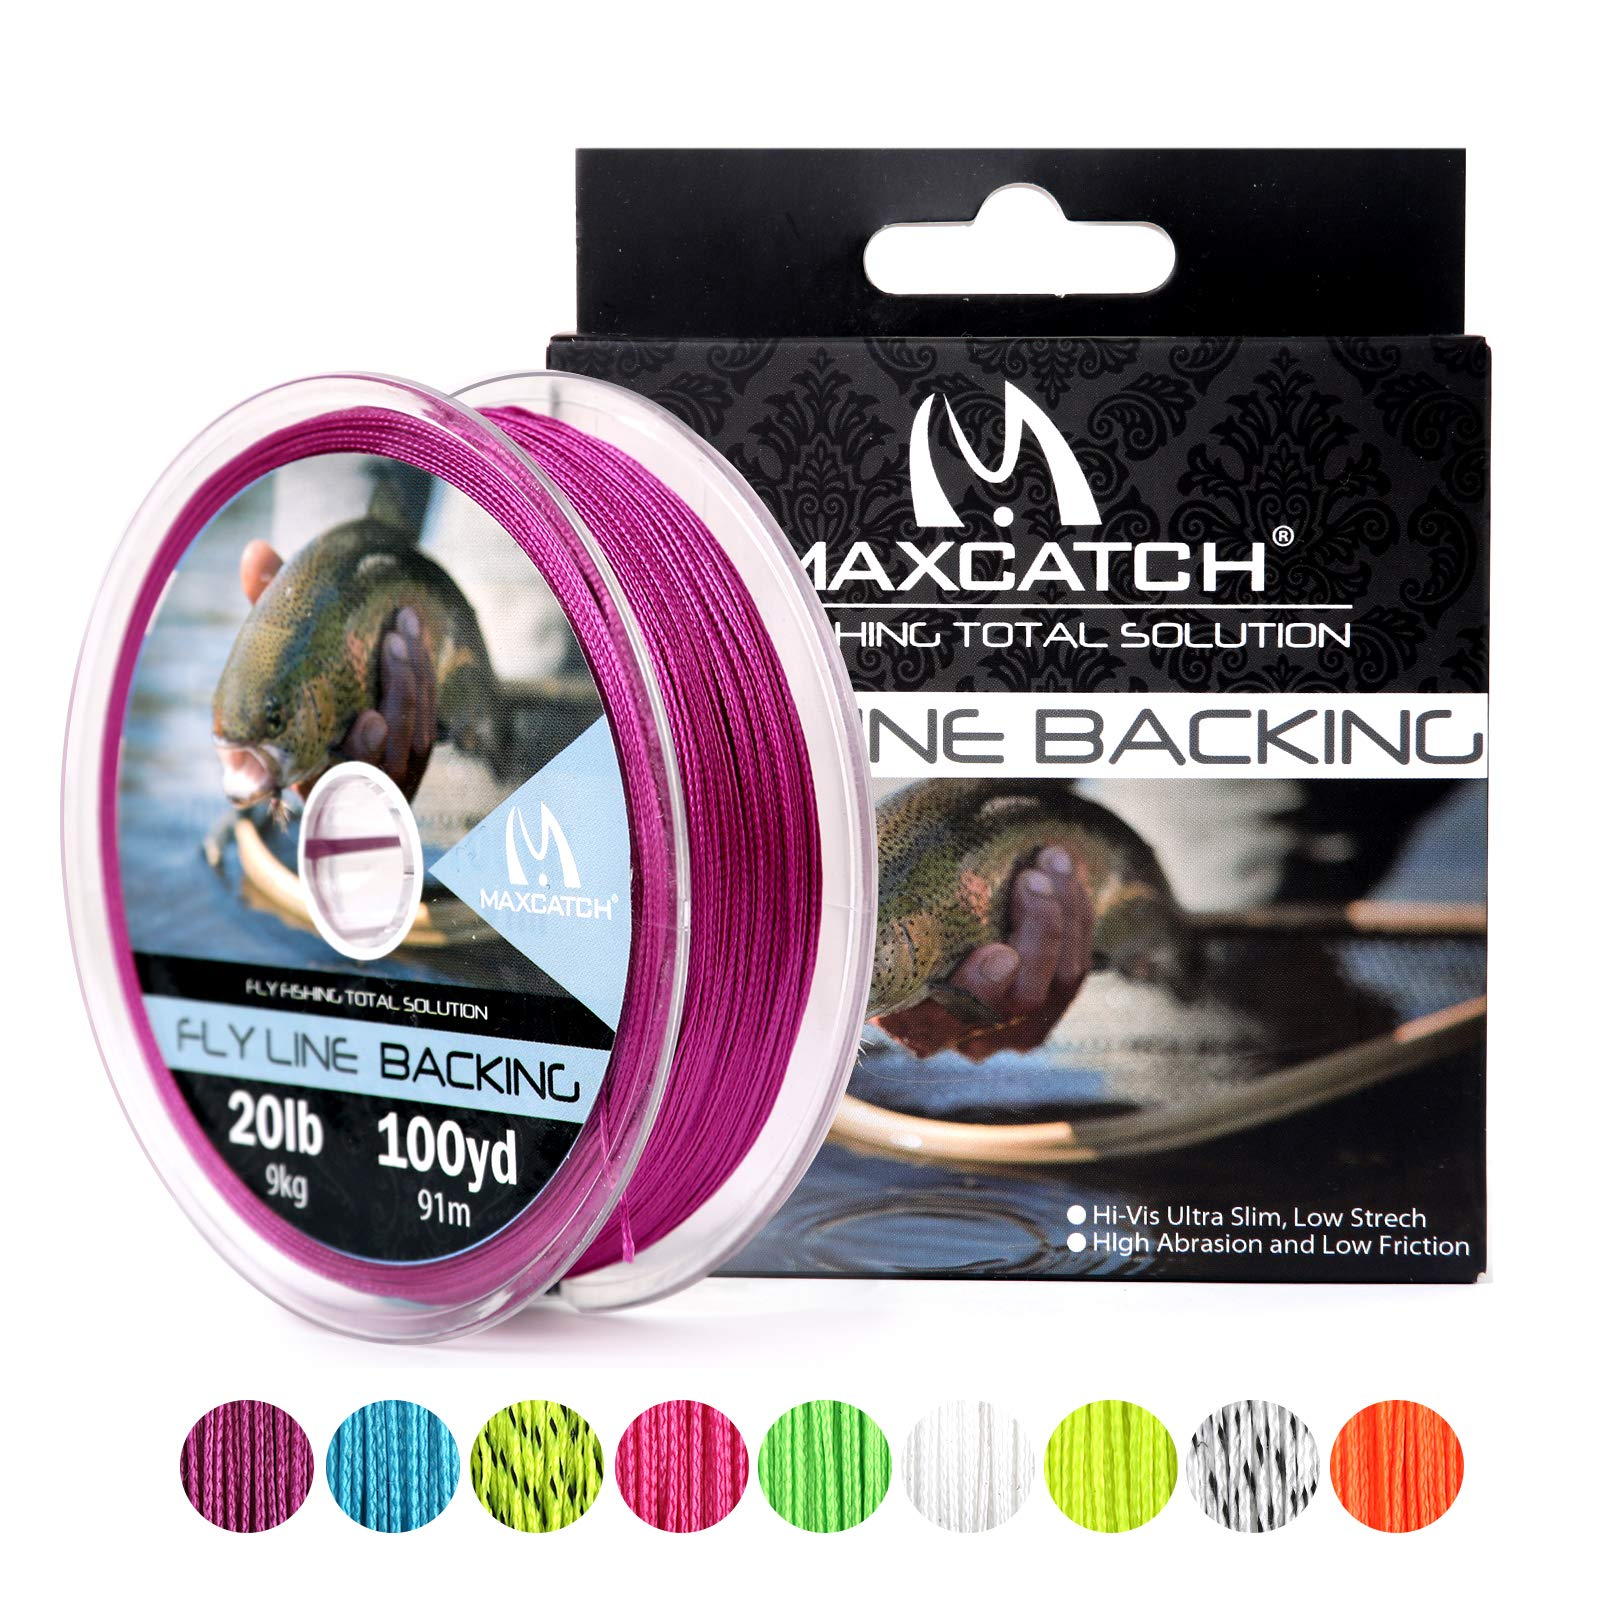 M MAXIMUMCATCH Maxcatch Braided Fly Line Backing for Fly Fishing 20/30lb(White, Yellow, Orange, Black&White, Black&Yellow) (Purple, 20lb,100yards) by M MAXIMUMCATCH